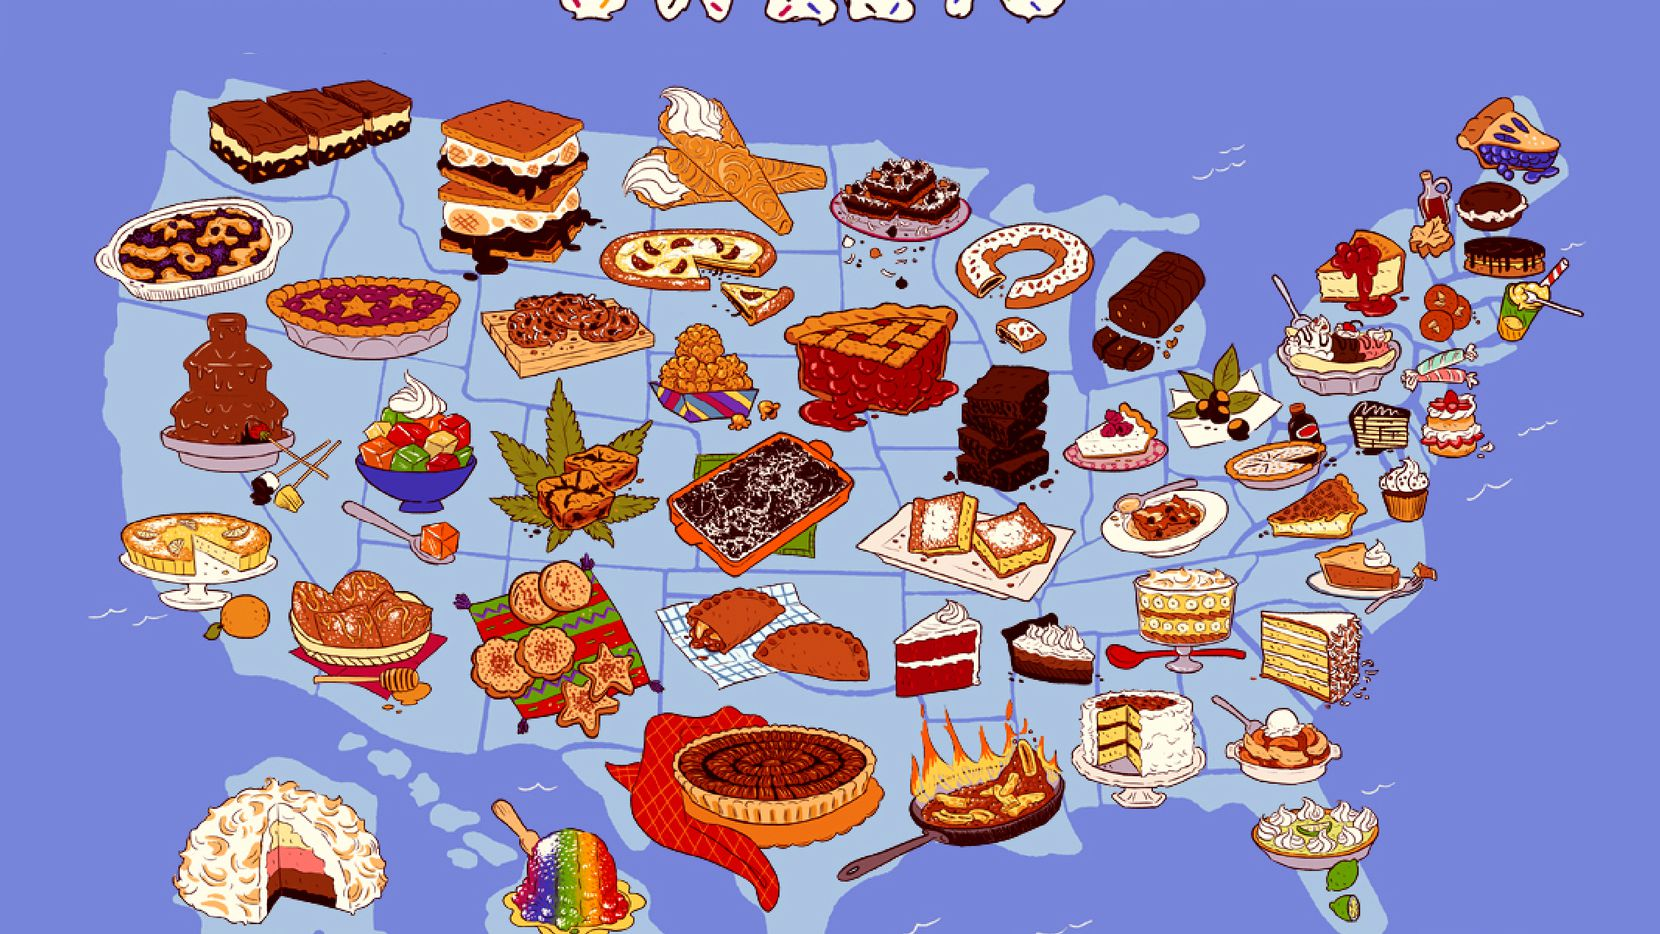 Each state ought to claim its own dessert, even as we all praise apple pie as the ultimate symbol of Americana. Surprisingly, only eight states have an official dessert; so the author has offered the other 42. Illustrates STATES-DESSERT (category l), by L.V. Anderson (c) 2014, Slate. Moved Wednesday, Aug. 27, 2014. (MUST CREDIT: Slate illustration by Jess Fink)